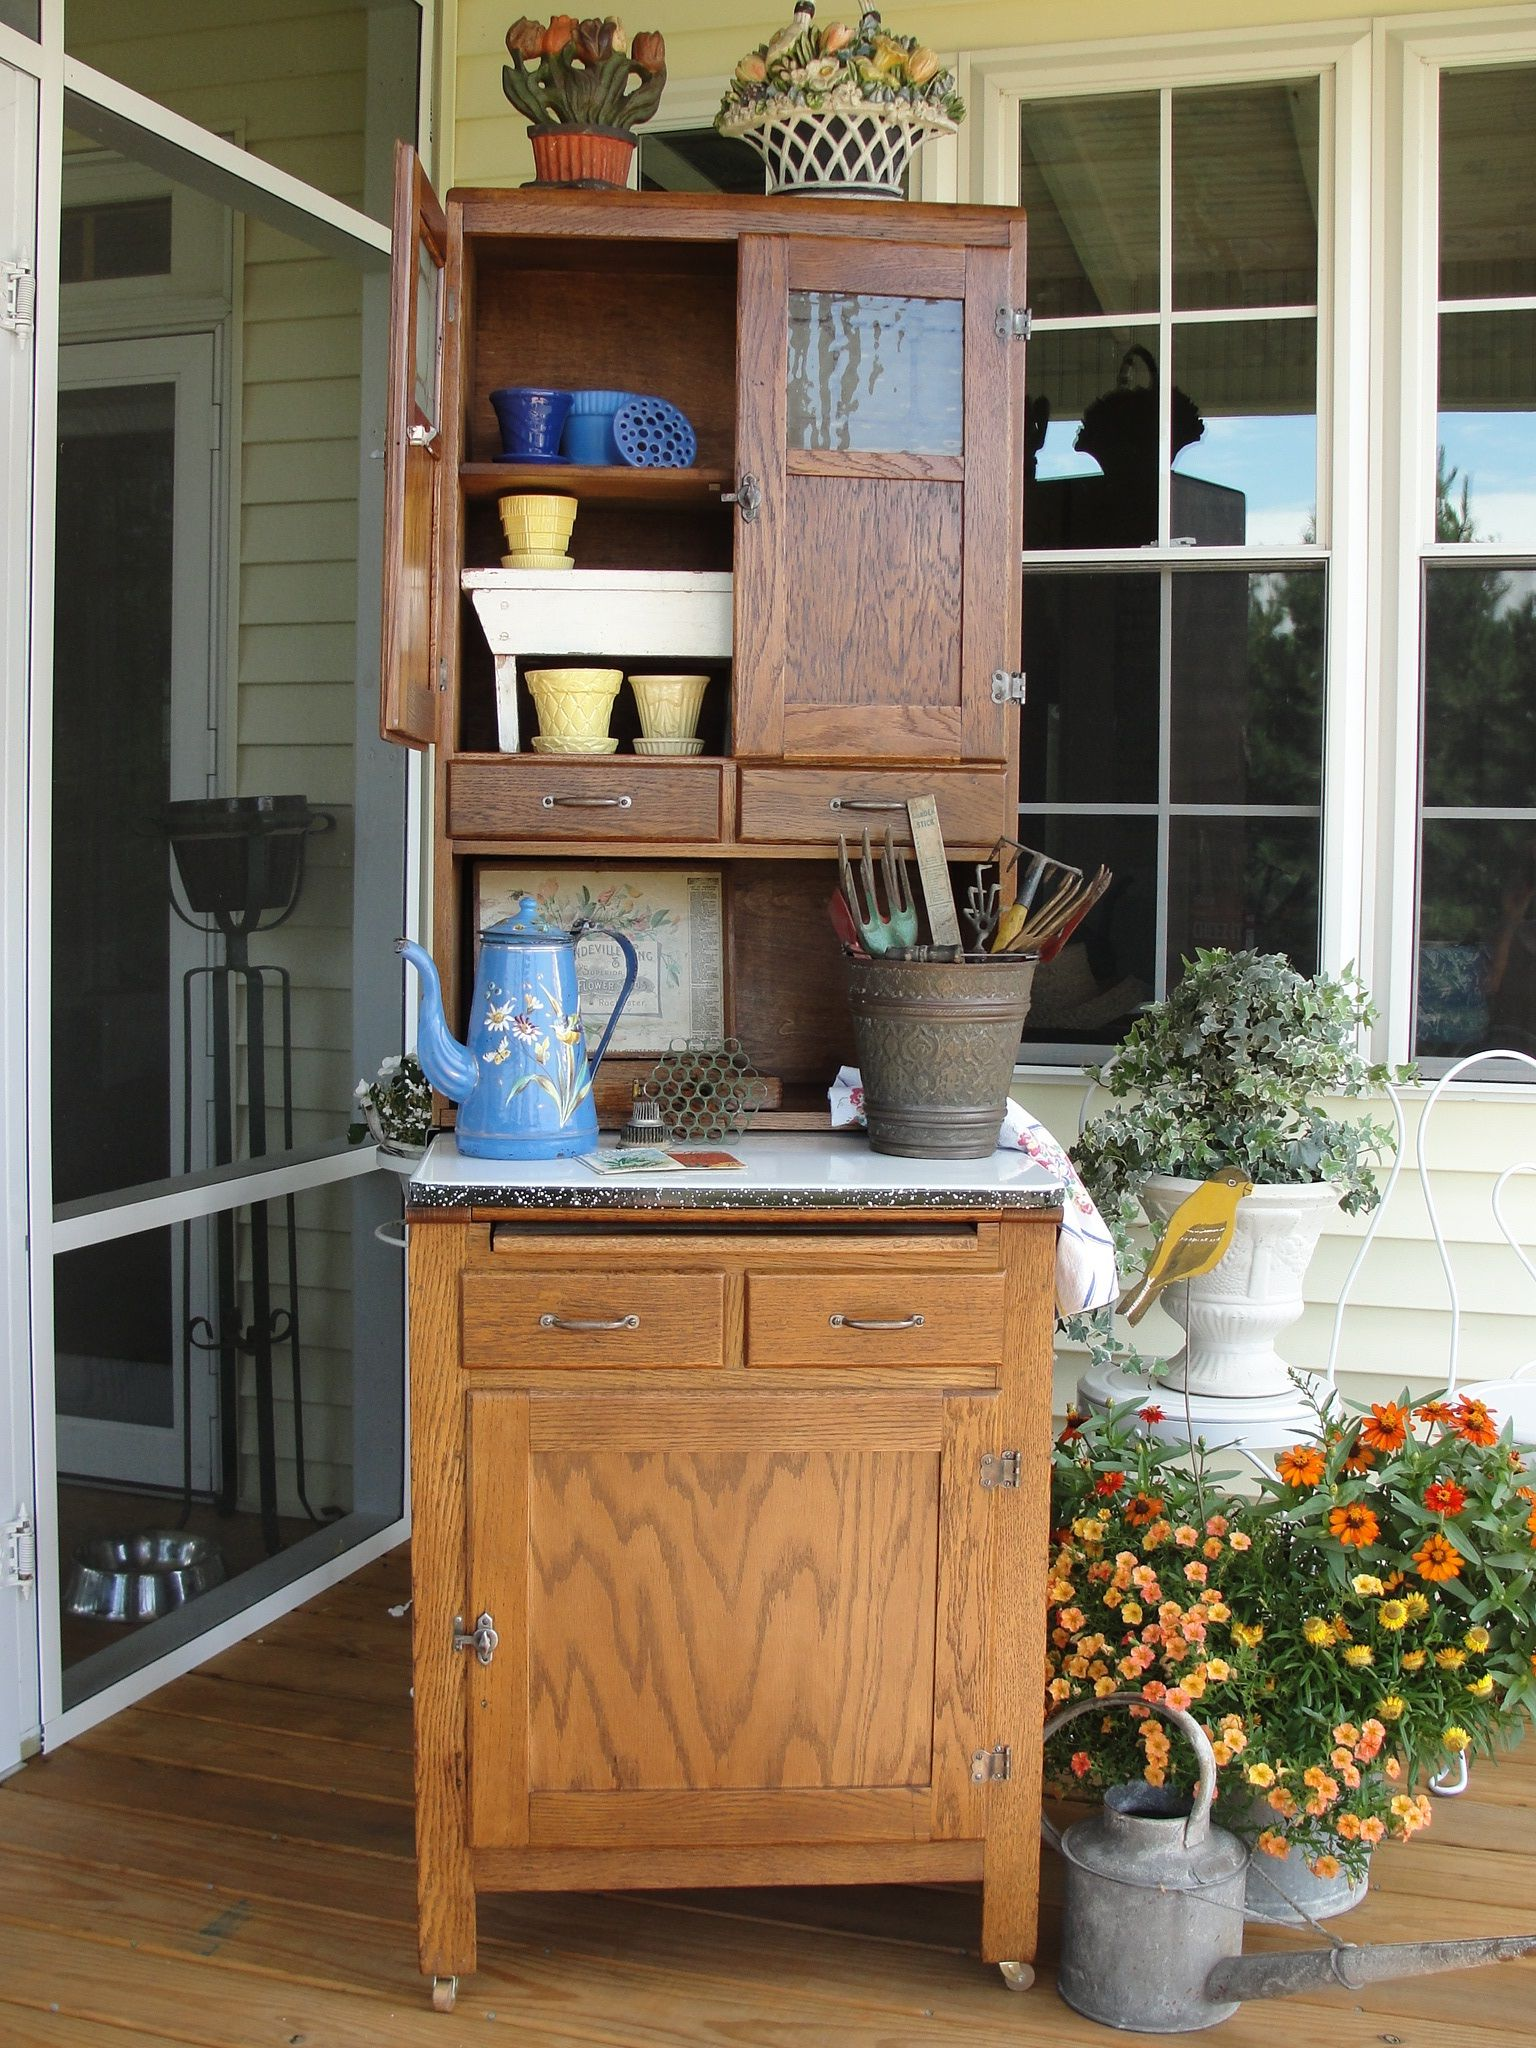 Apartment Size Hoosier Cabinet Small Apartment Size Hoosier With Vintage Garden Collectibles